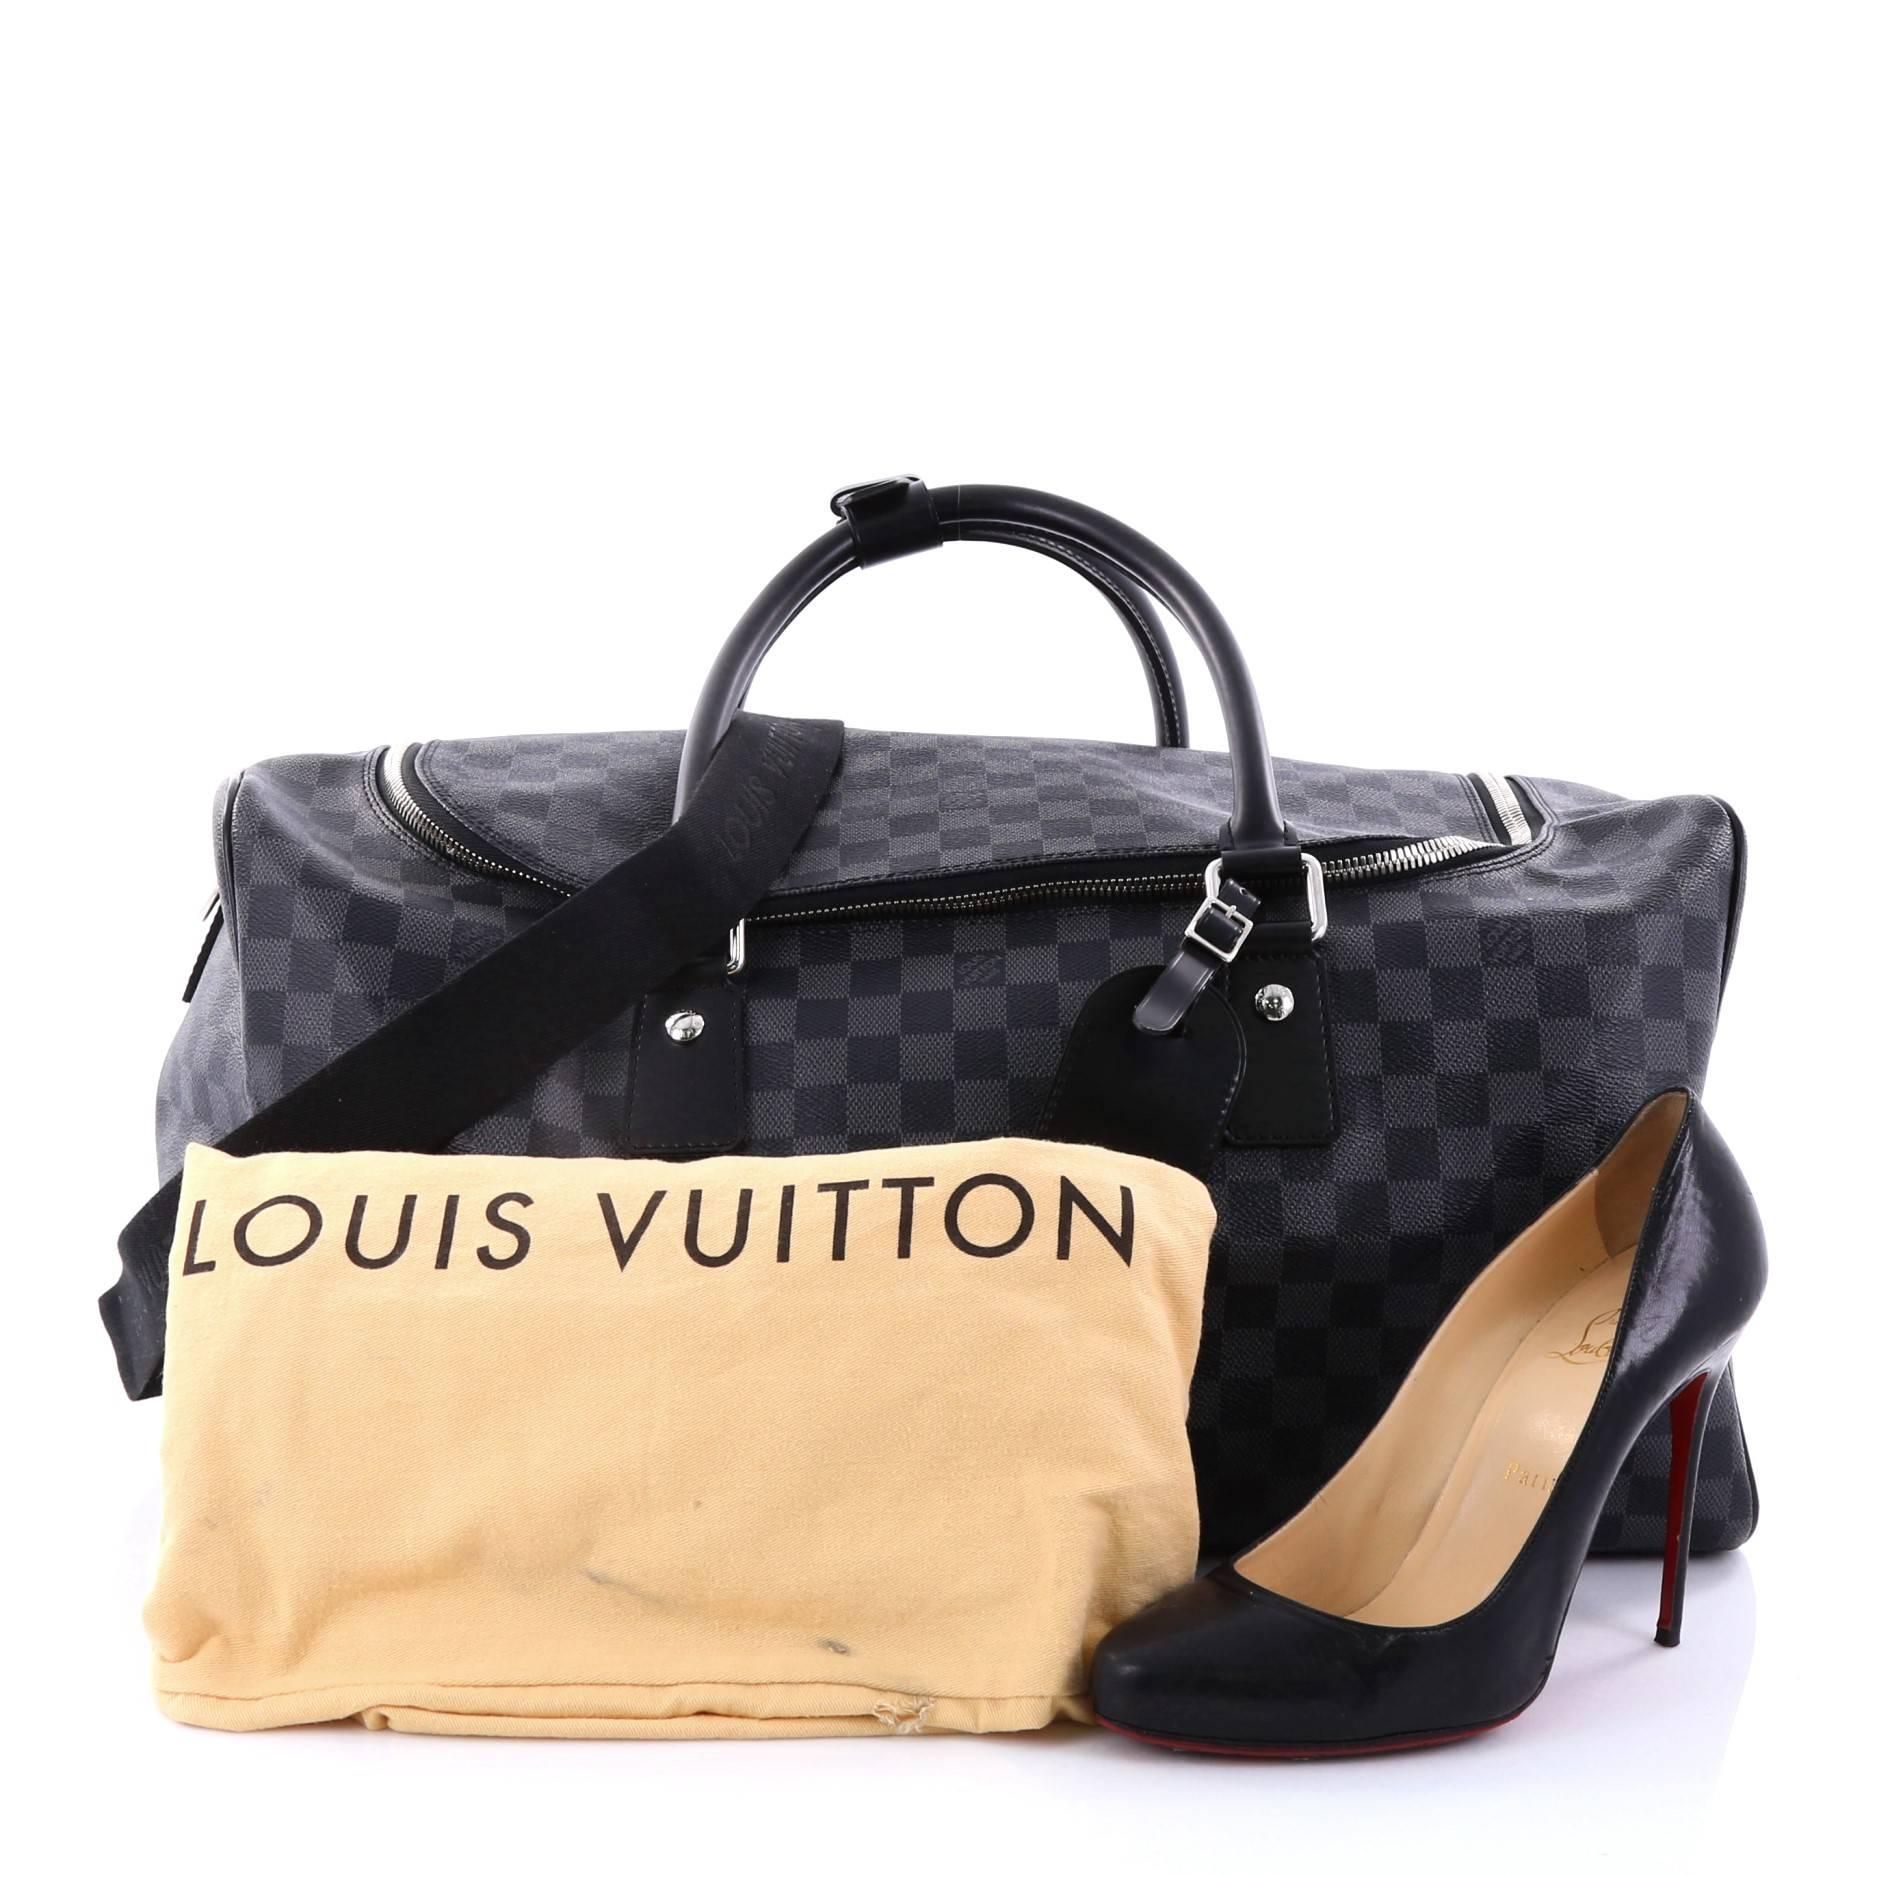 063231d50846 Louis Vuitton Roadster Handbag Damier Graphite at 1stdibs